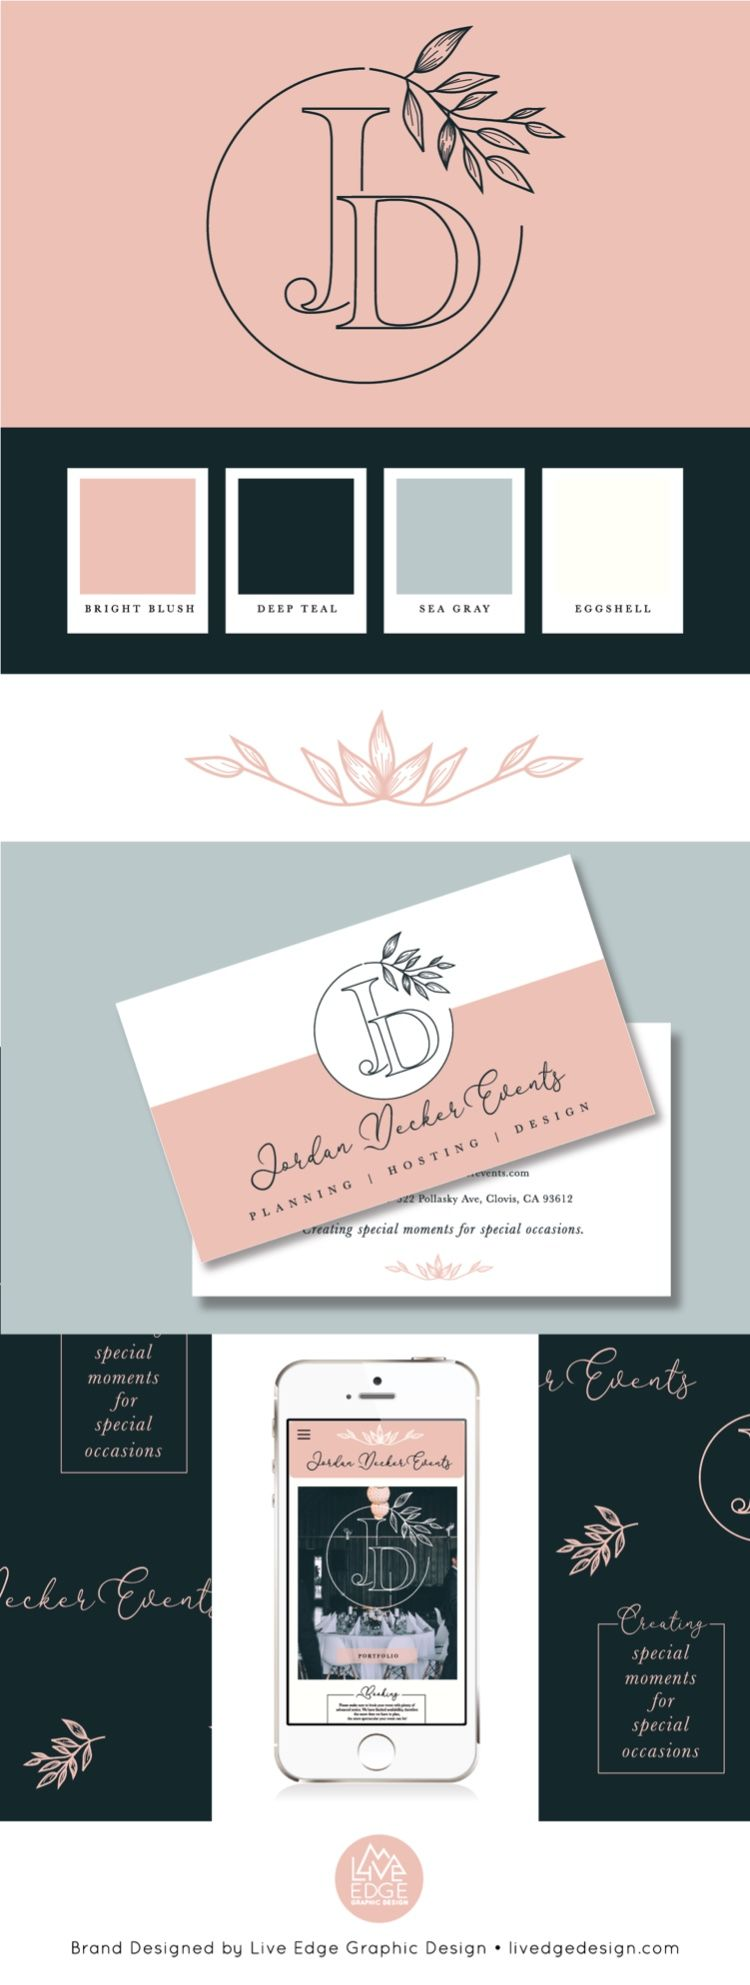 Conceptualized Cross Platform Branding For Stationary And Web Including Palette Composition Design And Compo Branding Design Rose Gold Iphone Custom Graphics